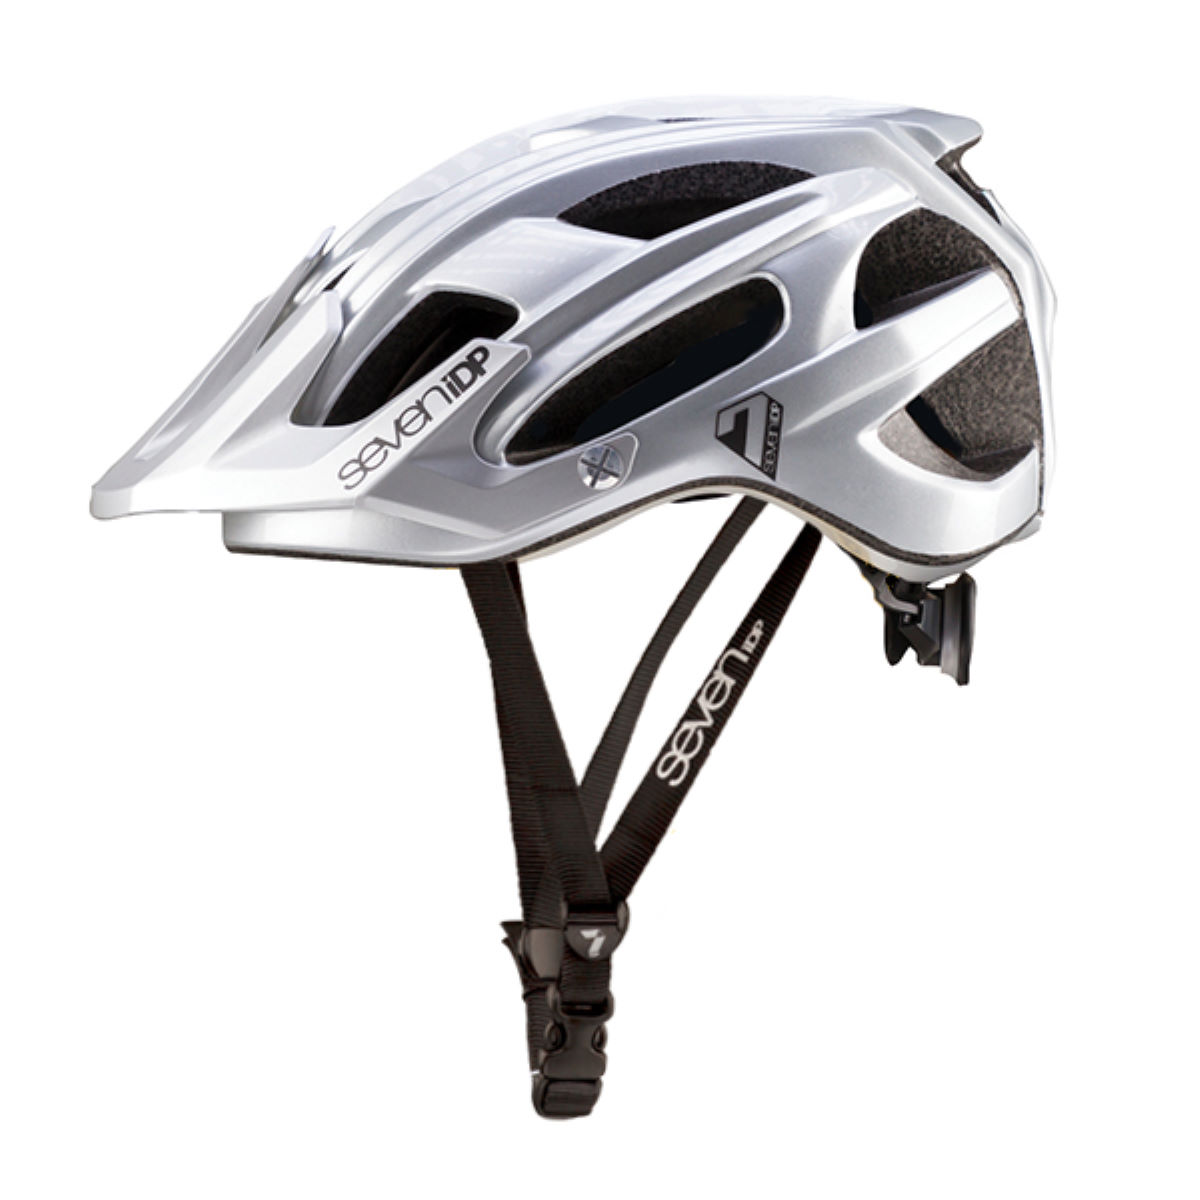 Casque 7 iDP M4 - S/M Grey - Black Casques VTT